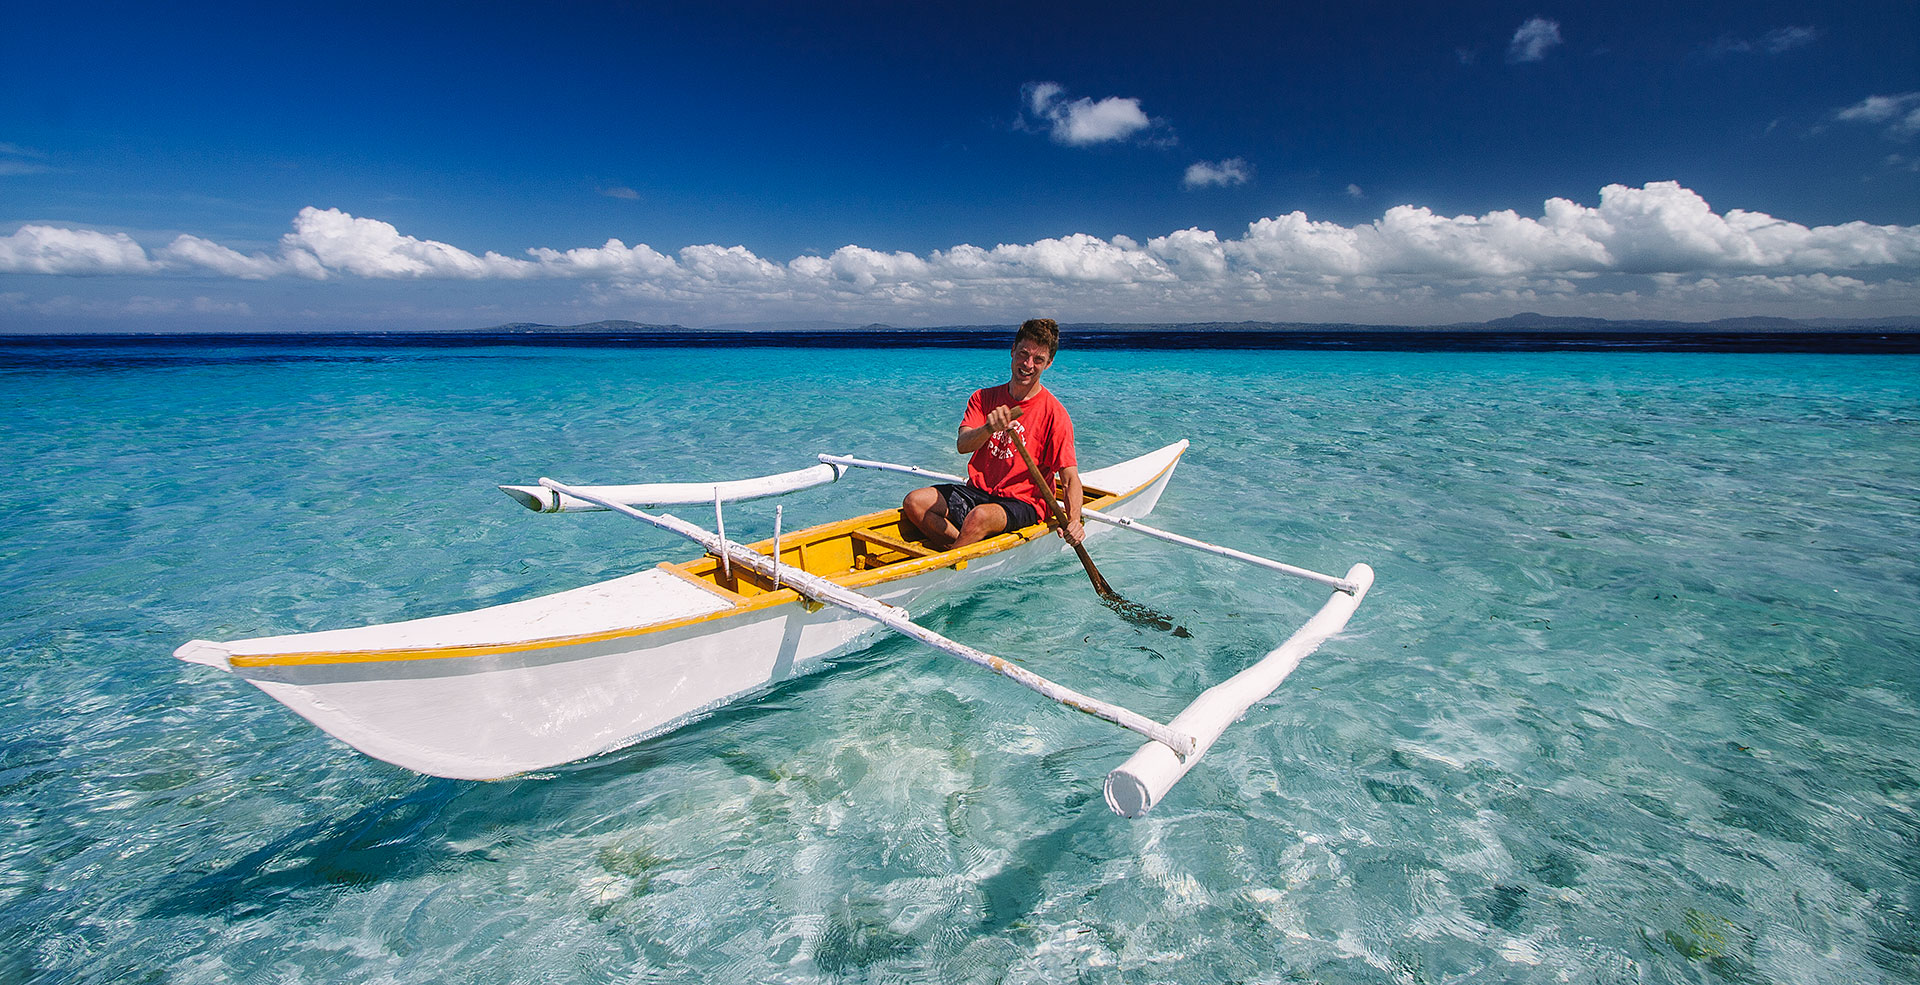 Sea kayaking and island hopping the tropical paradise of the Philippines